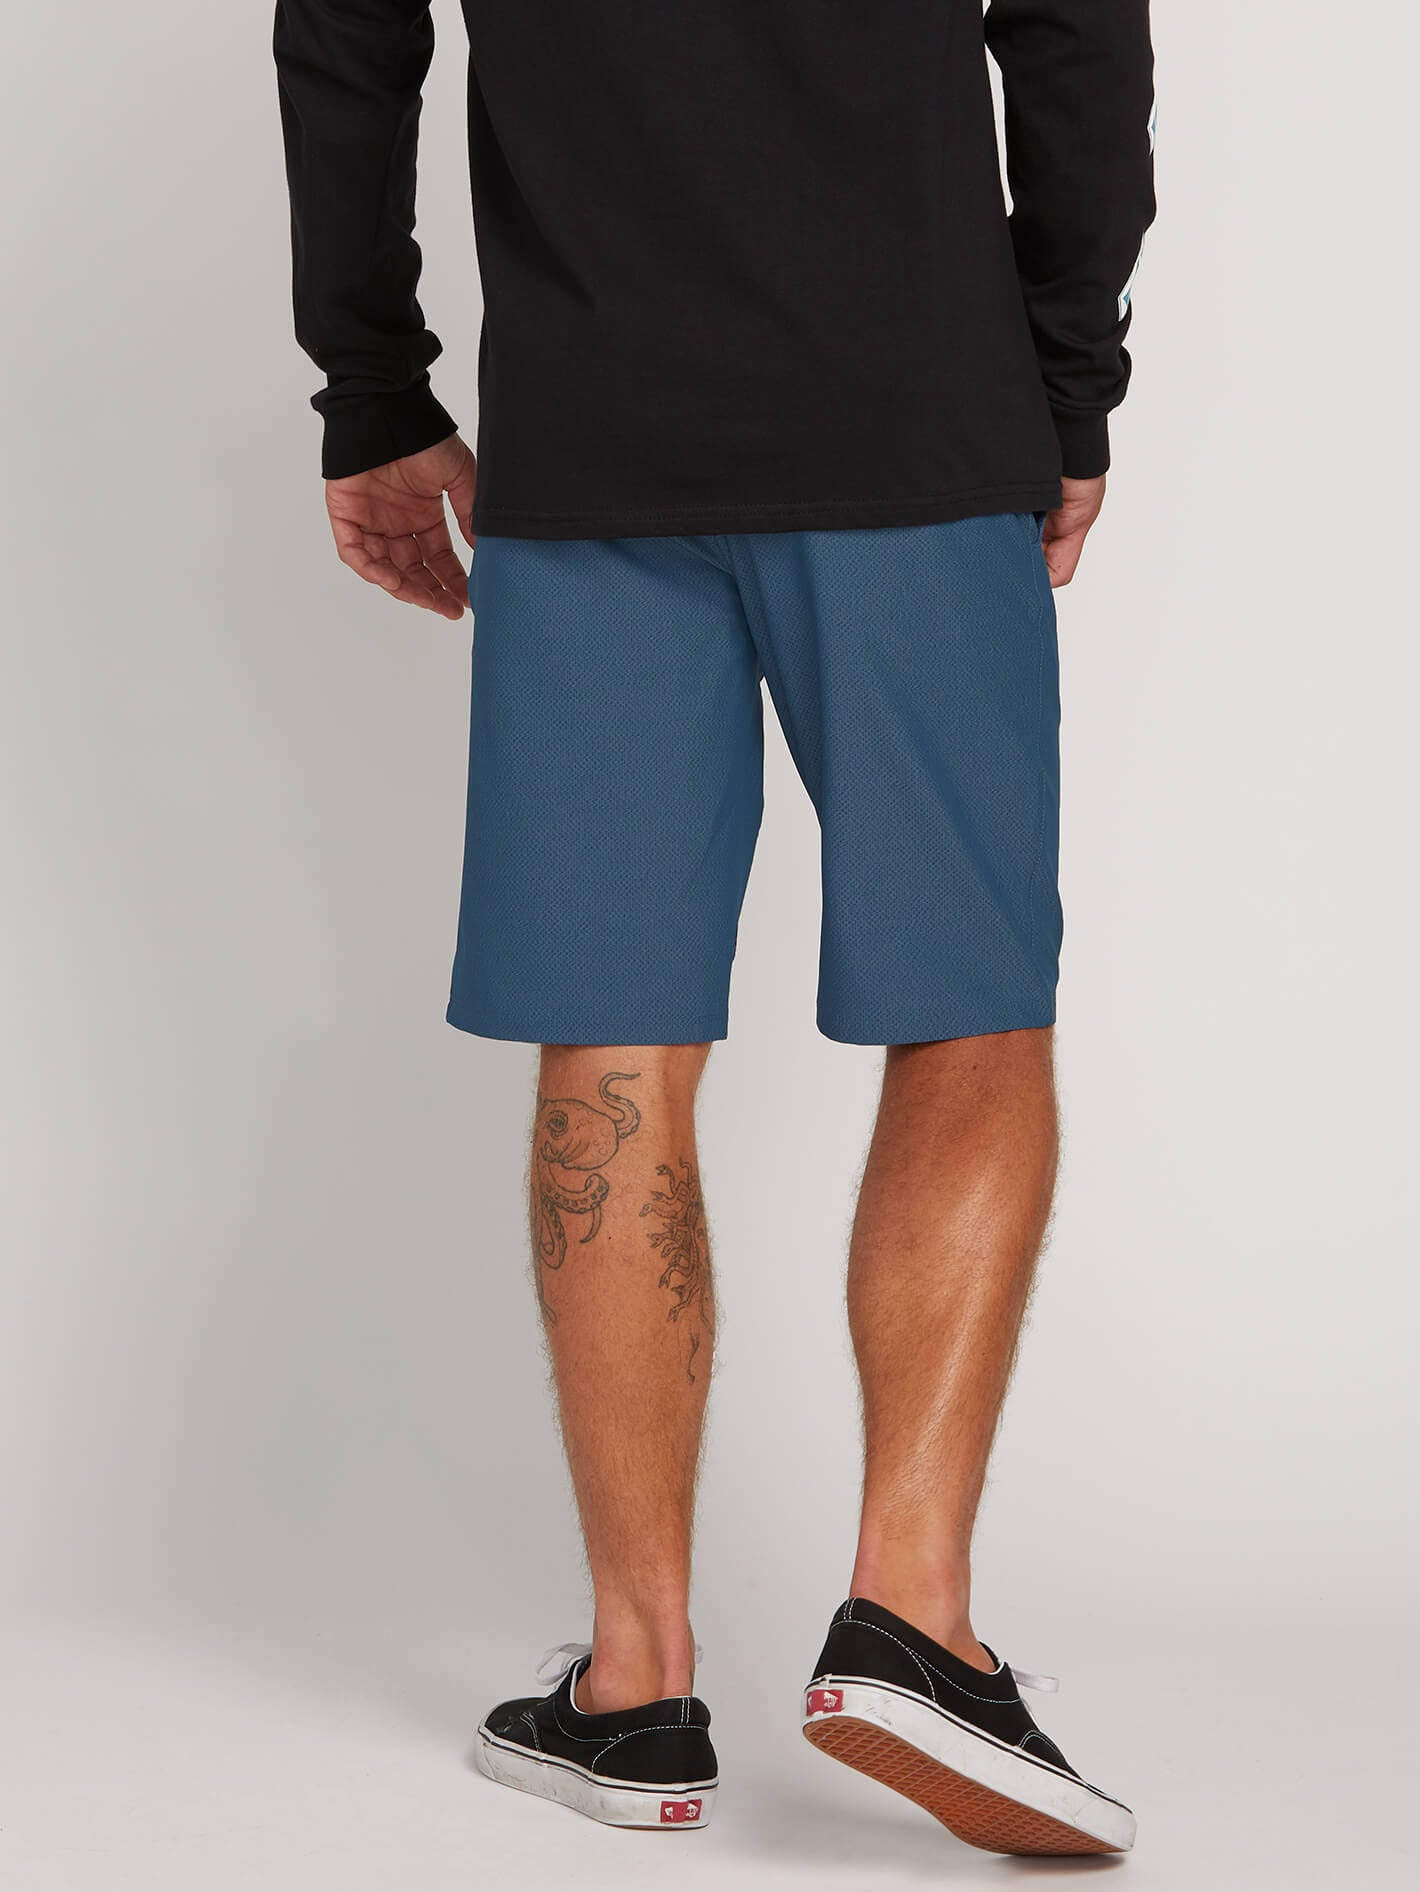 0b609d15c8 Frickin Surf N' Turf Dry Hybrid Shorts - Tidal Blue in TIDAL BLUE -  Alternative